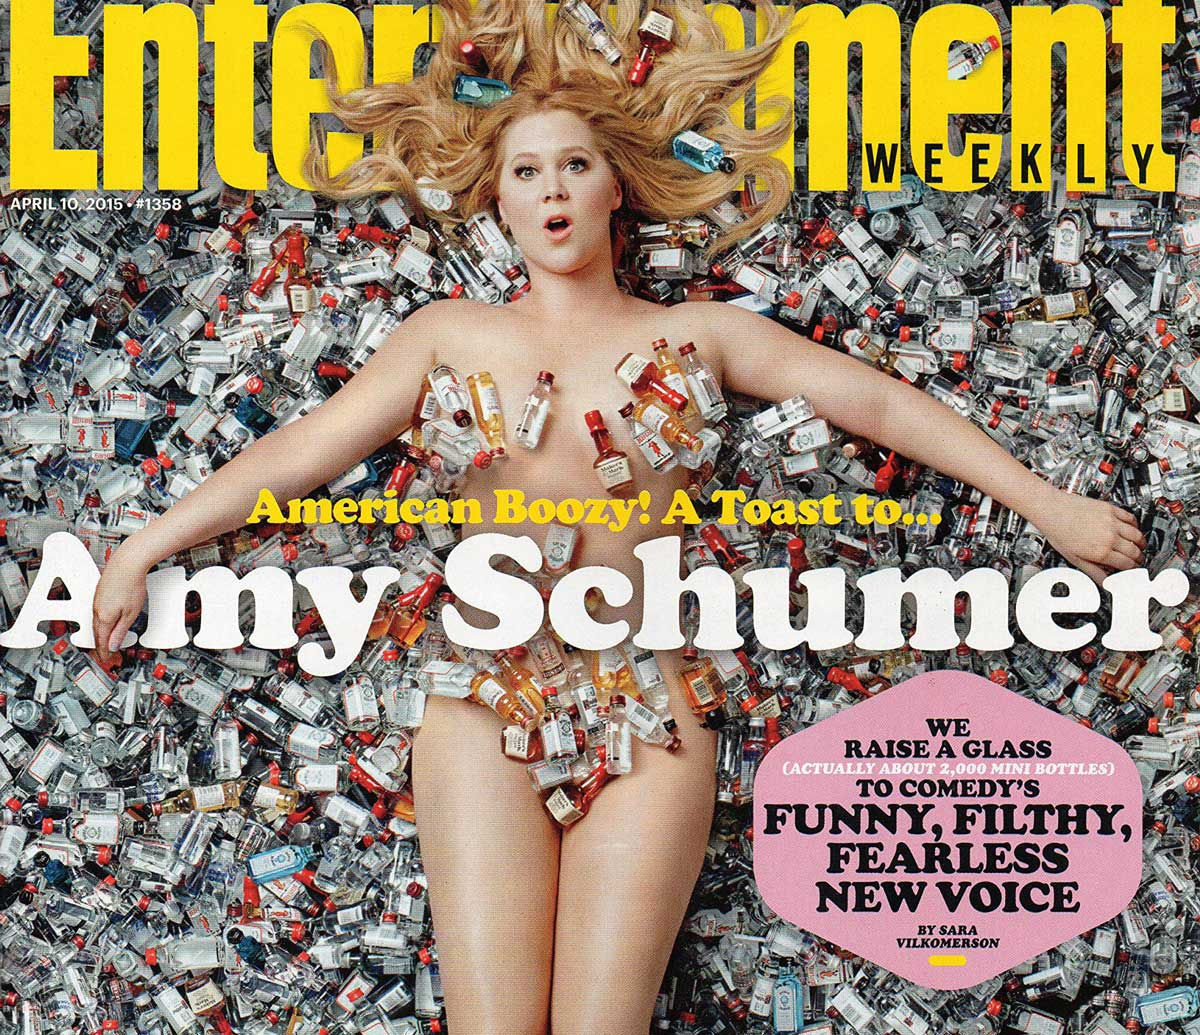 amy-schumer-american-boozy-cropped